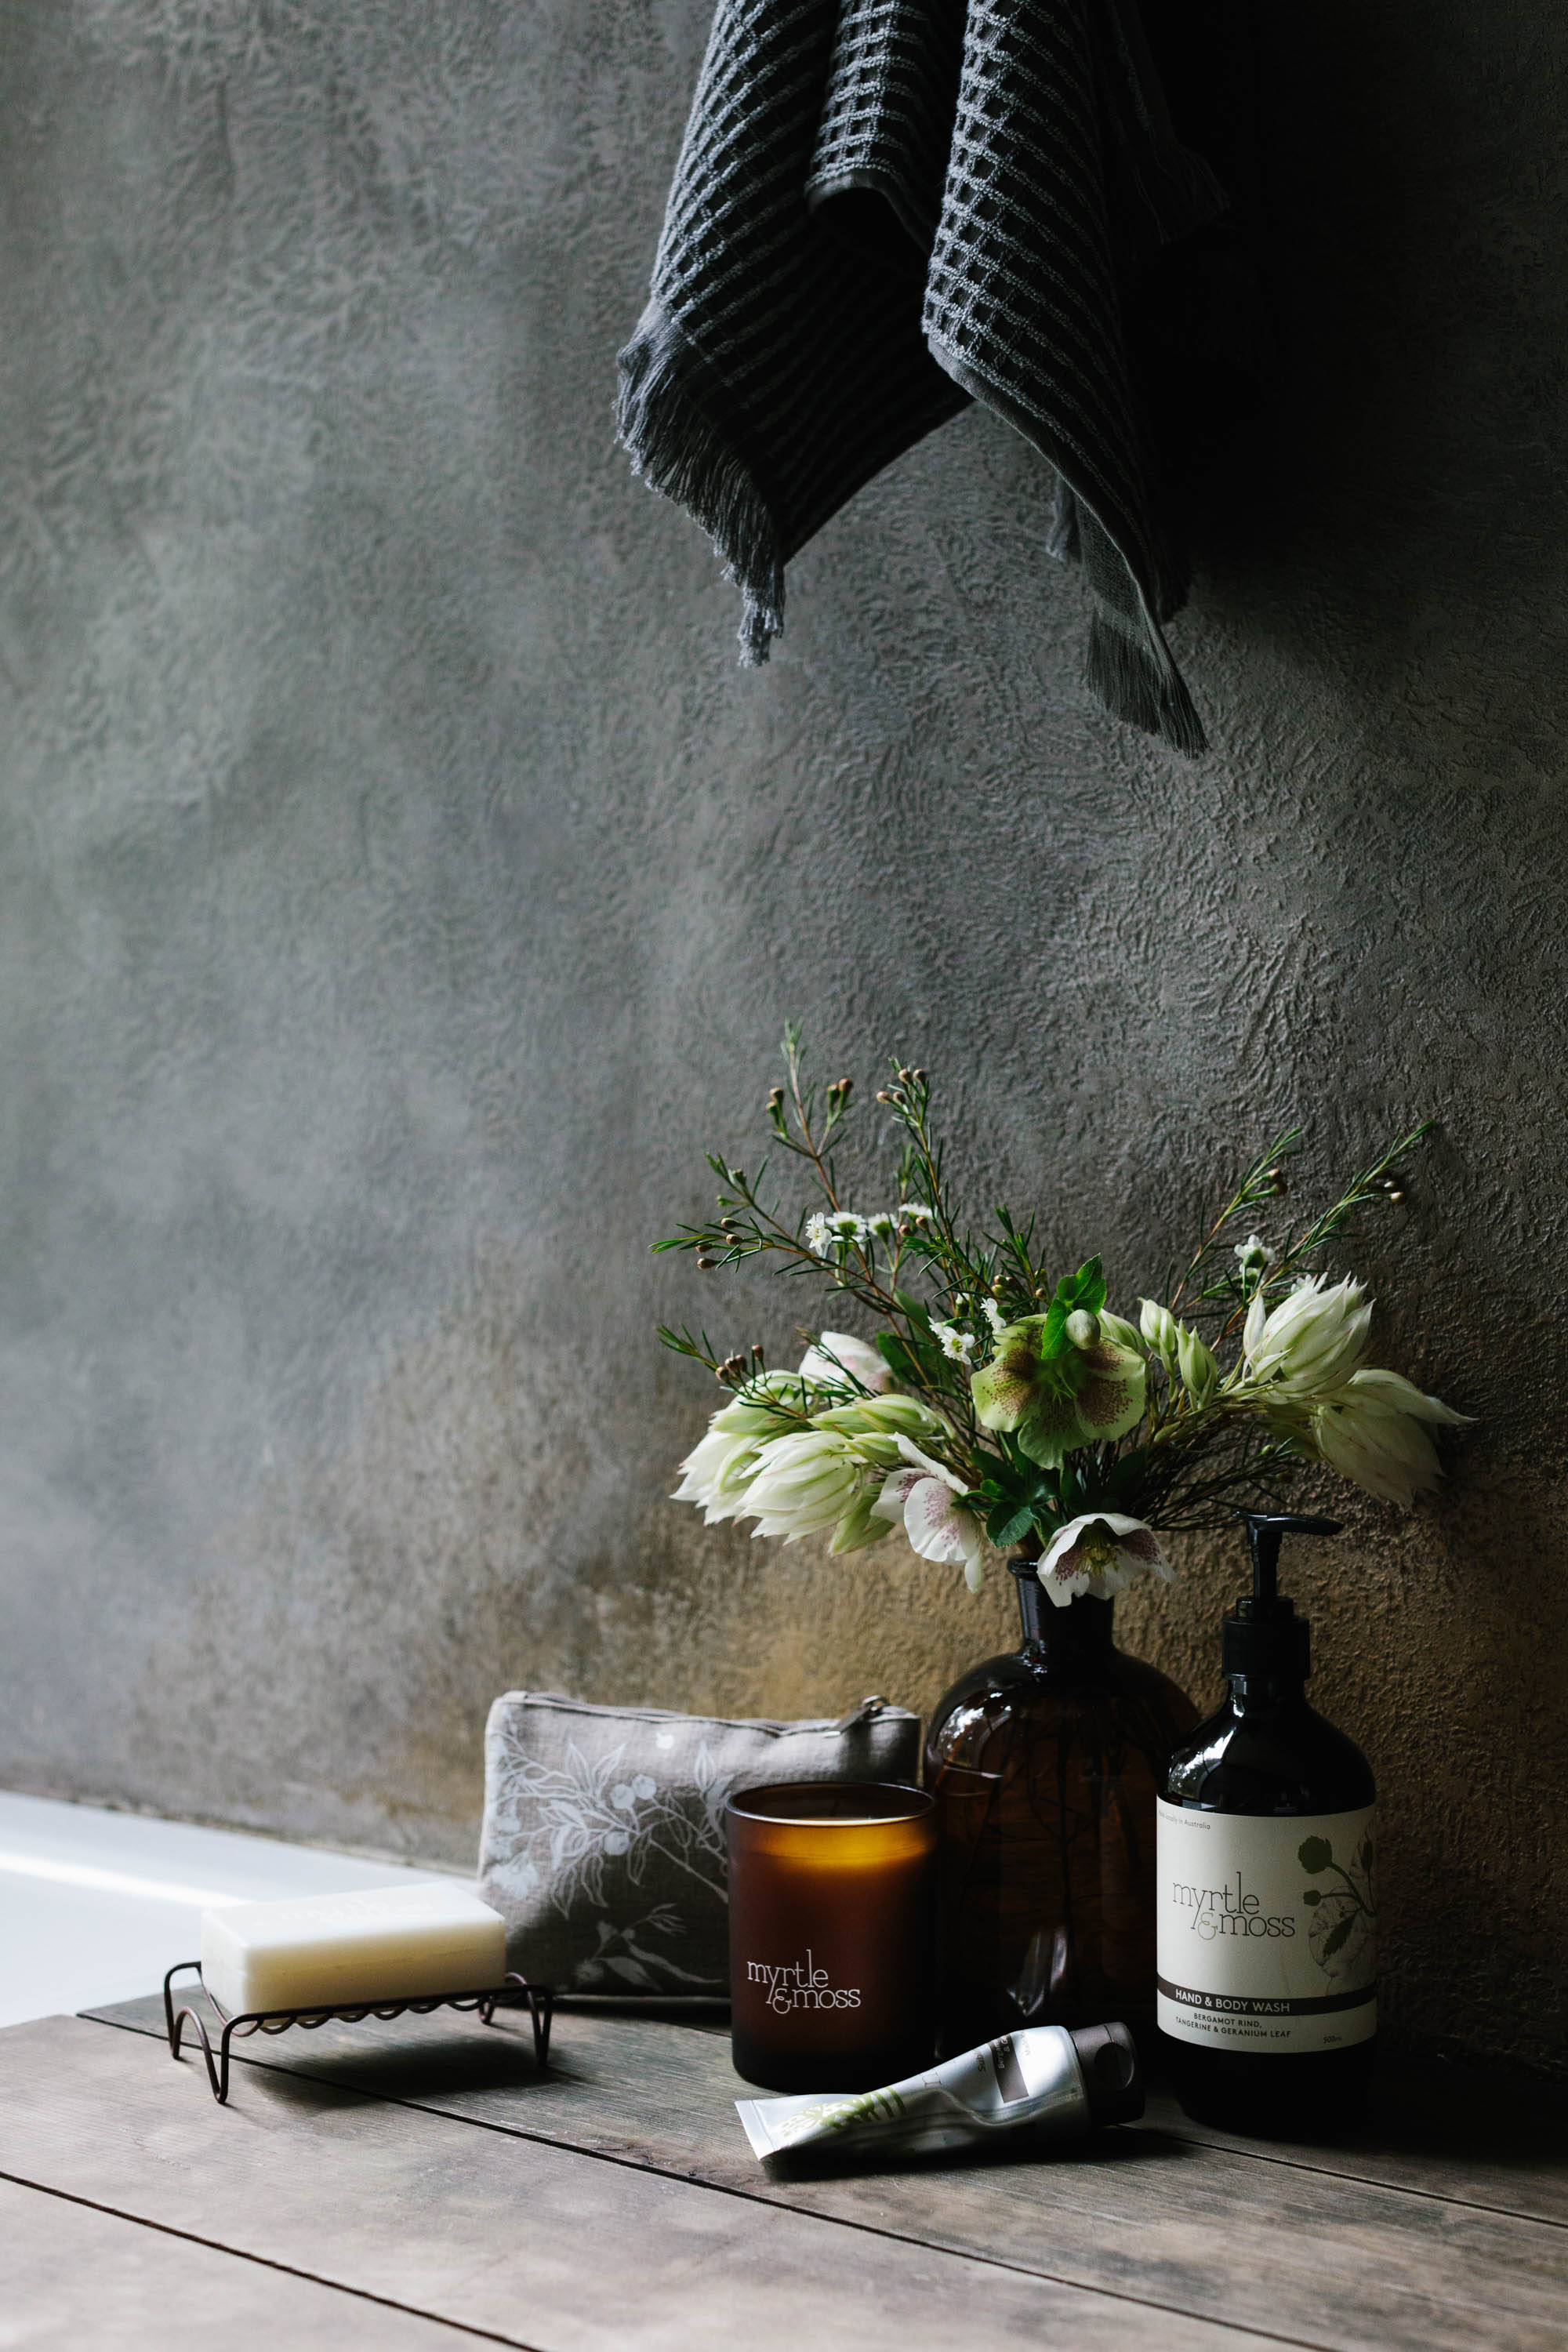 Marnie Hawson, Melbourne lifestyle photography, for Myrtle & Moss, botanical skincare